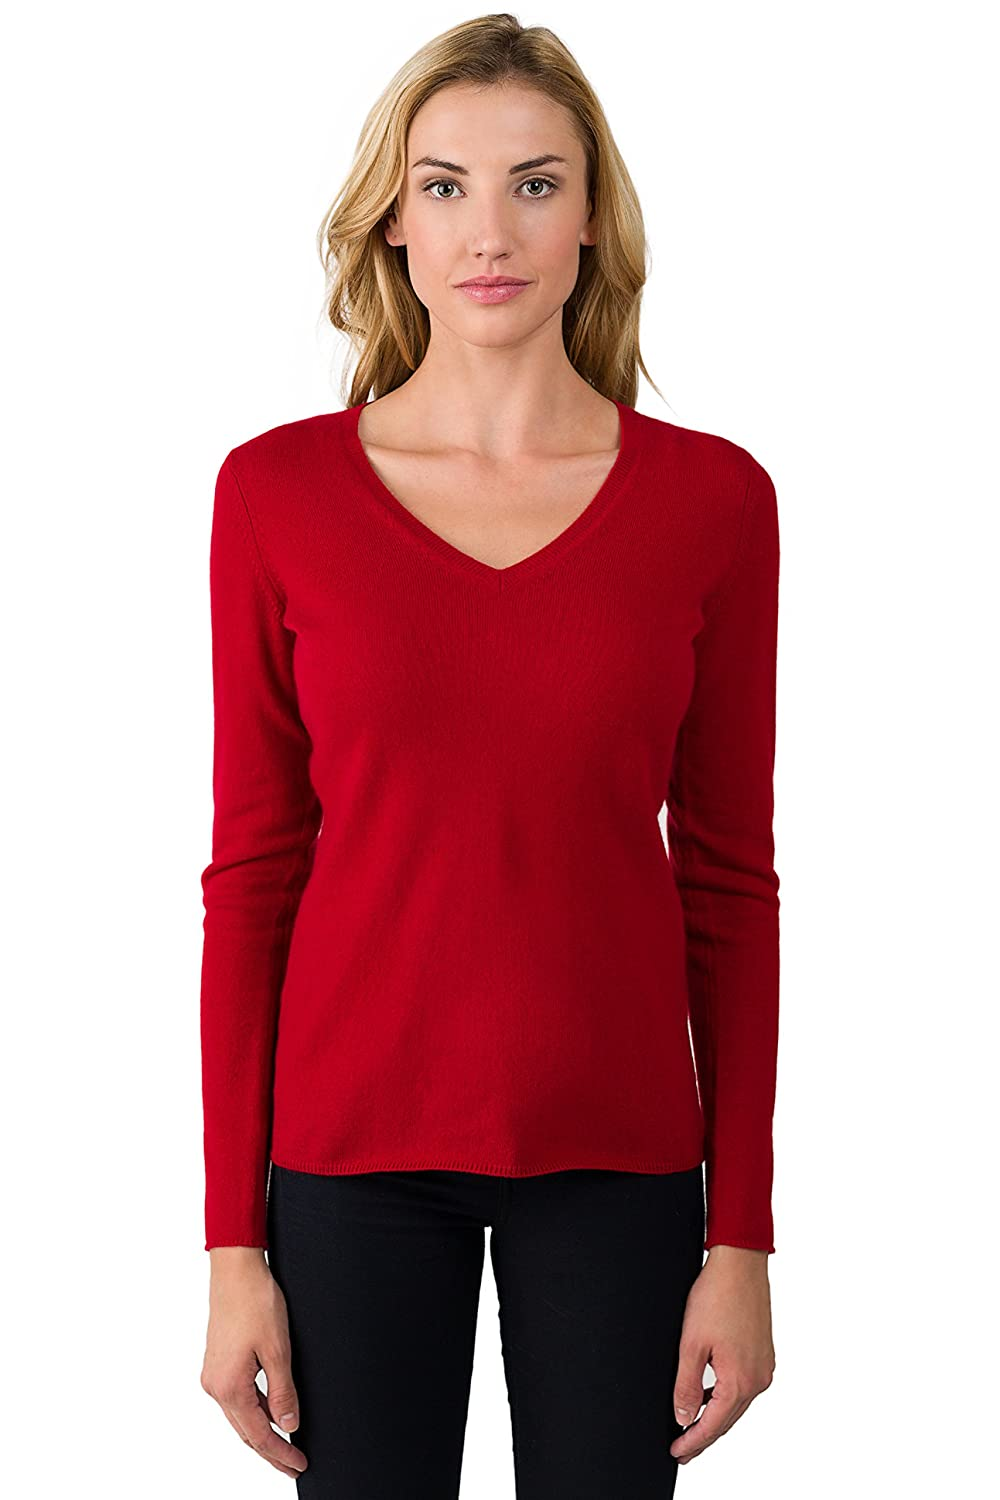 JENNIE LIU Women's 100% Pure Cashmere Long Sleeve Pullover V Neck Sweater F10816